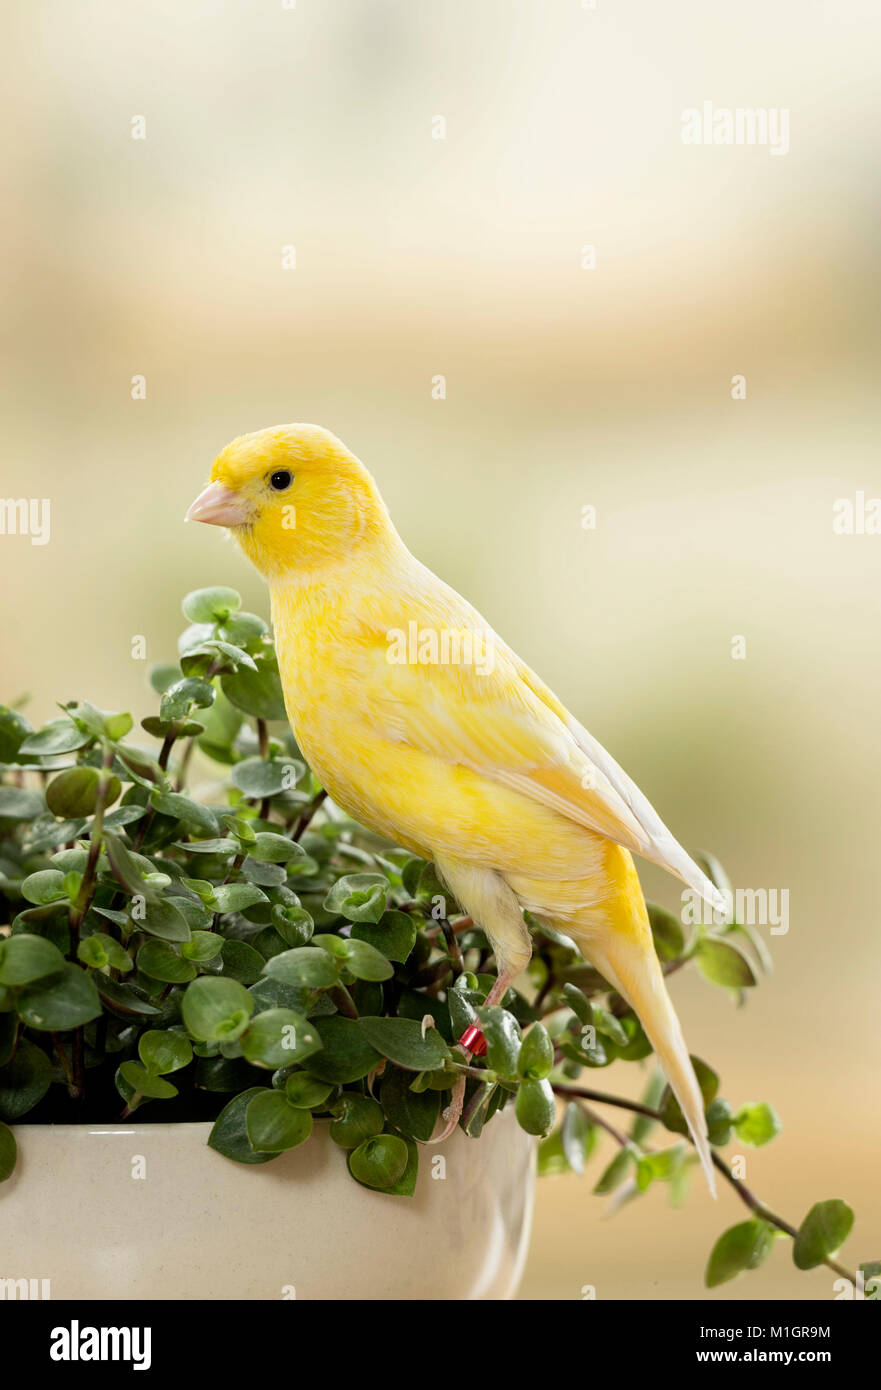 Domestic canary. Adult bird eating Bolivian Jew. Germany - Stock Image